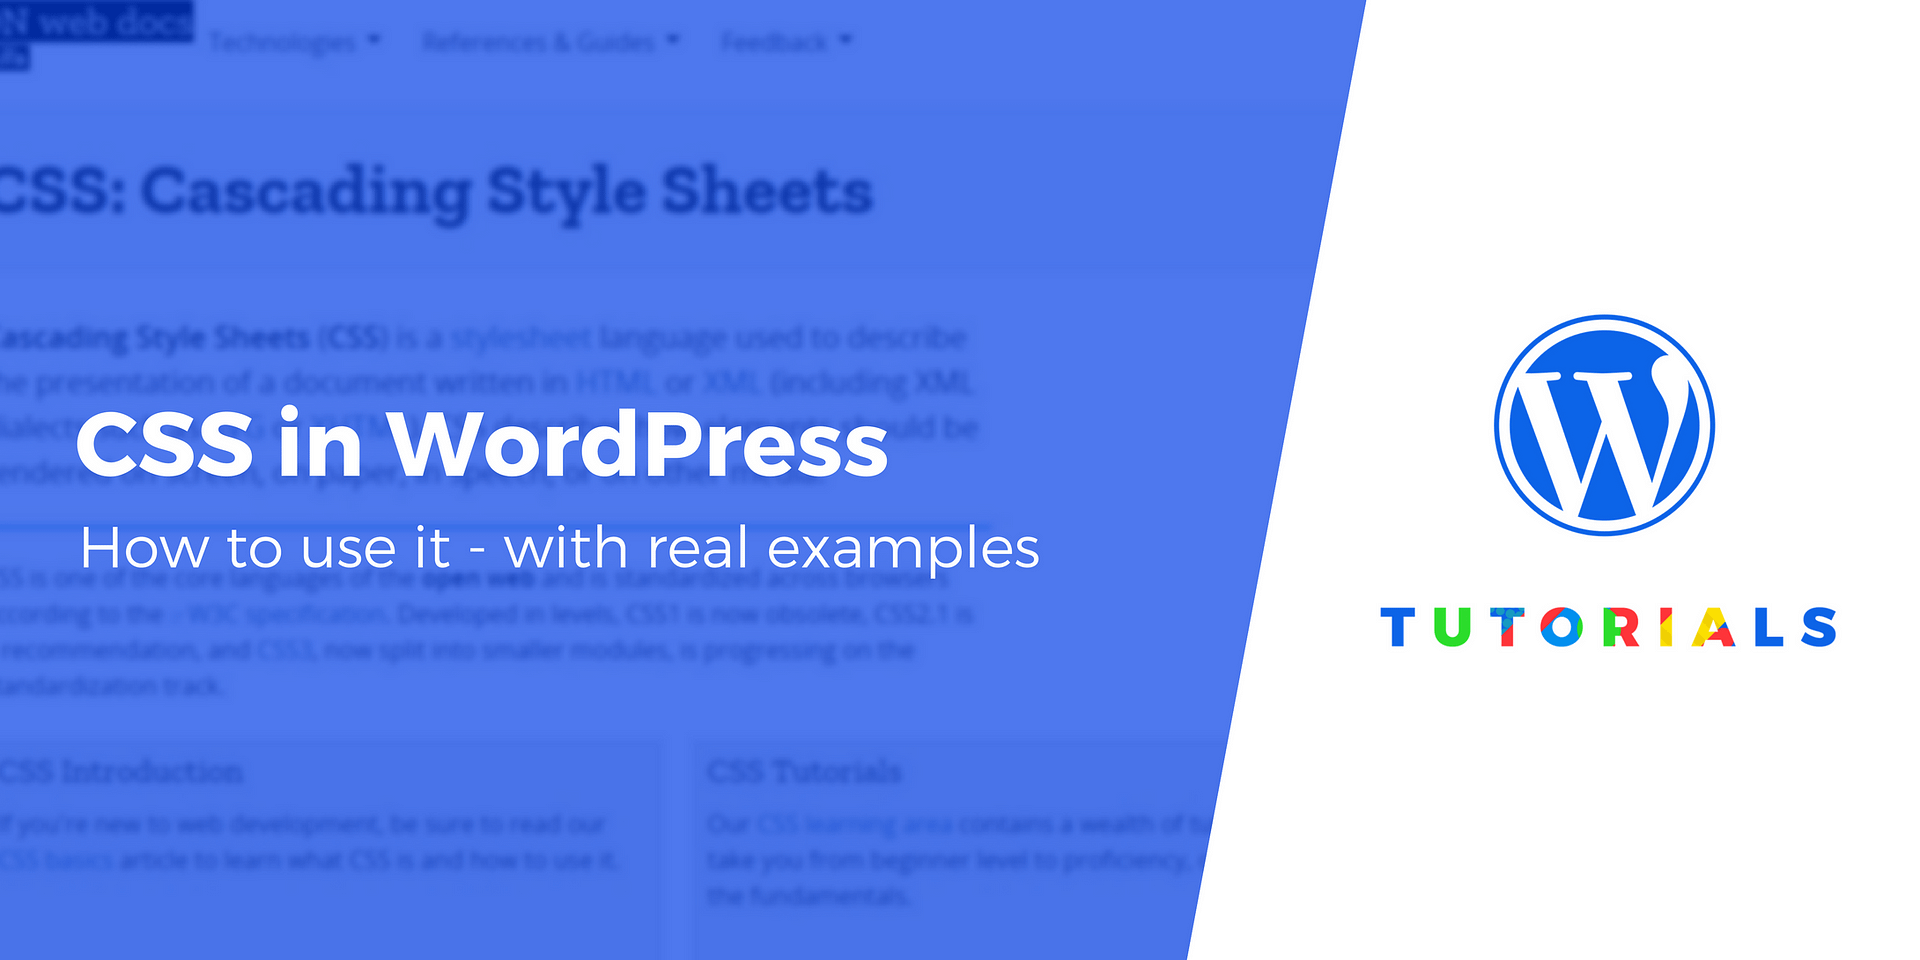 Beginner's Guide: How to Use CSS in WordPress for Easy Style